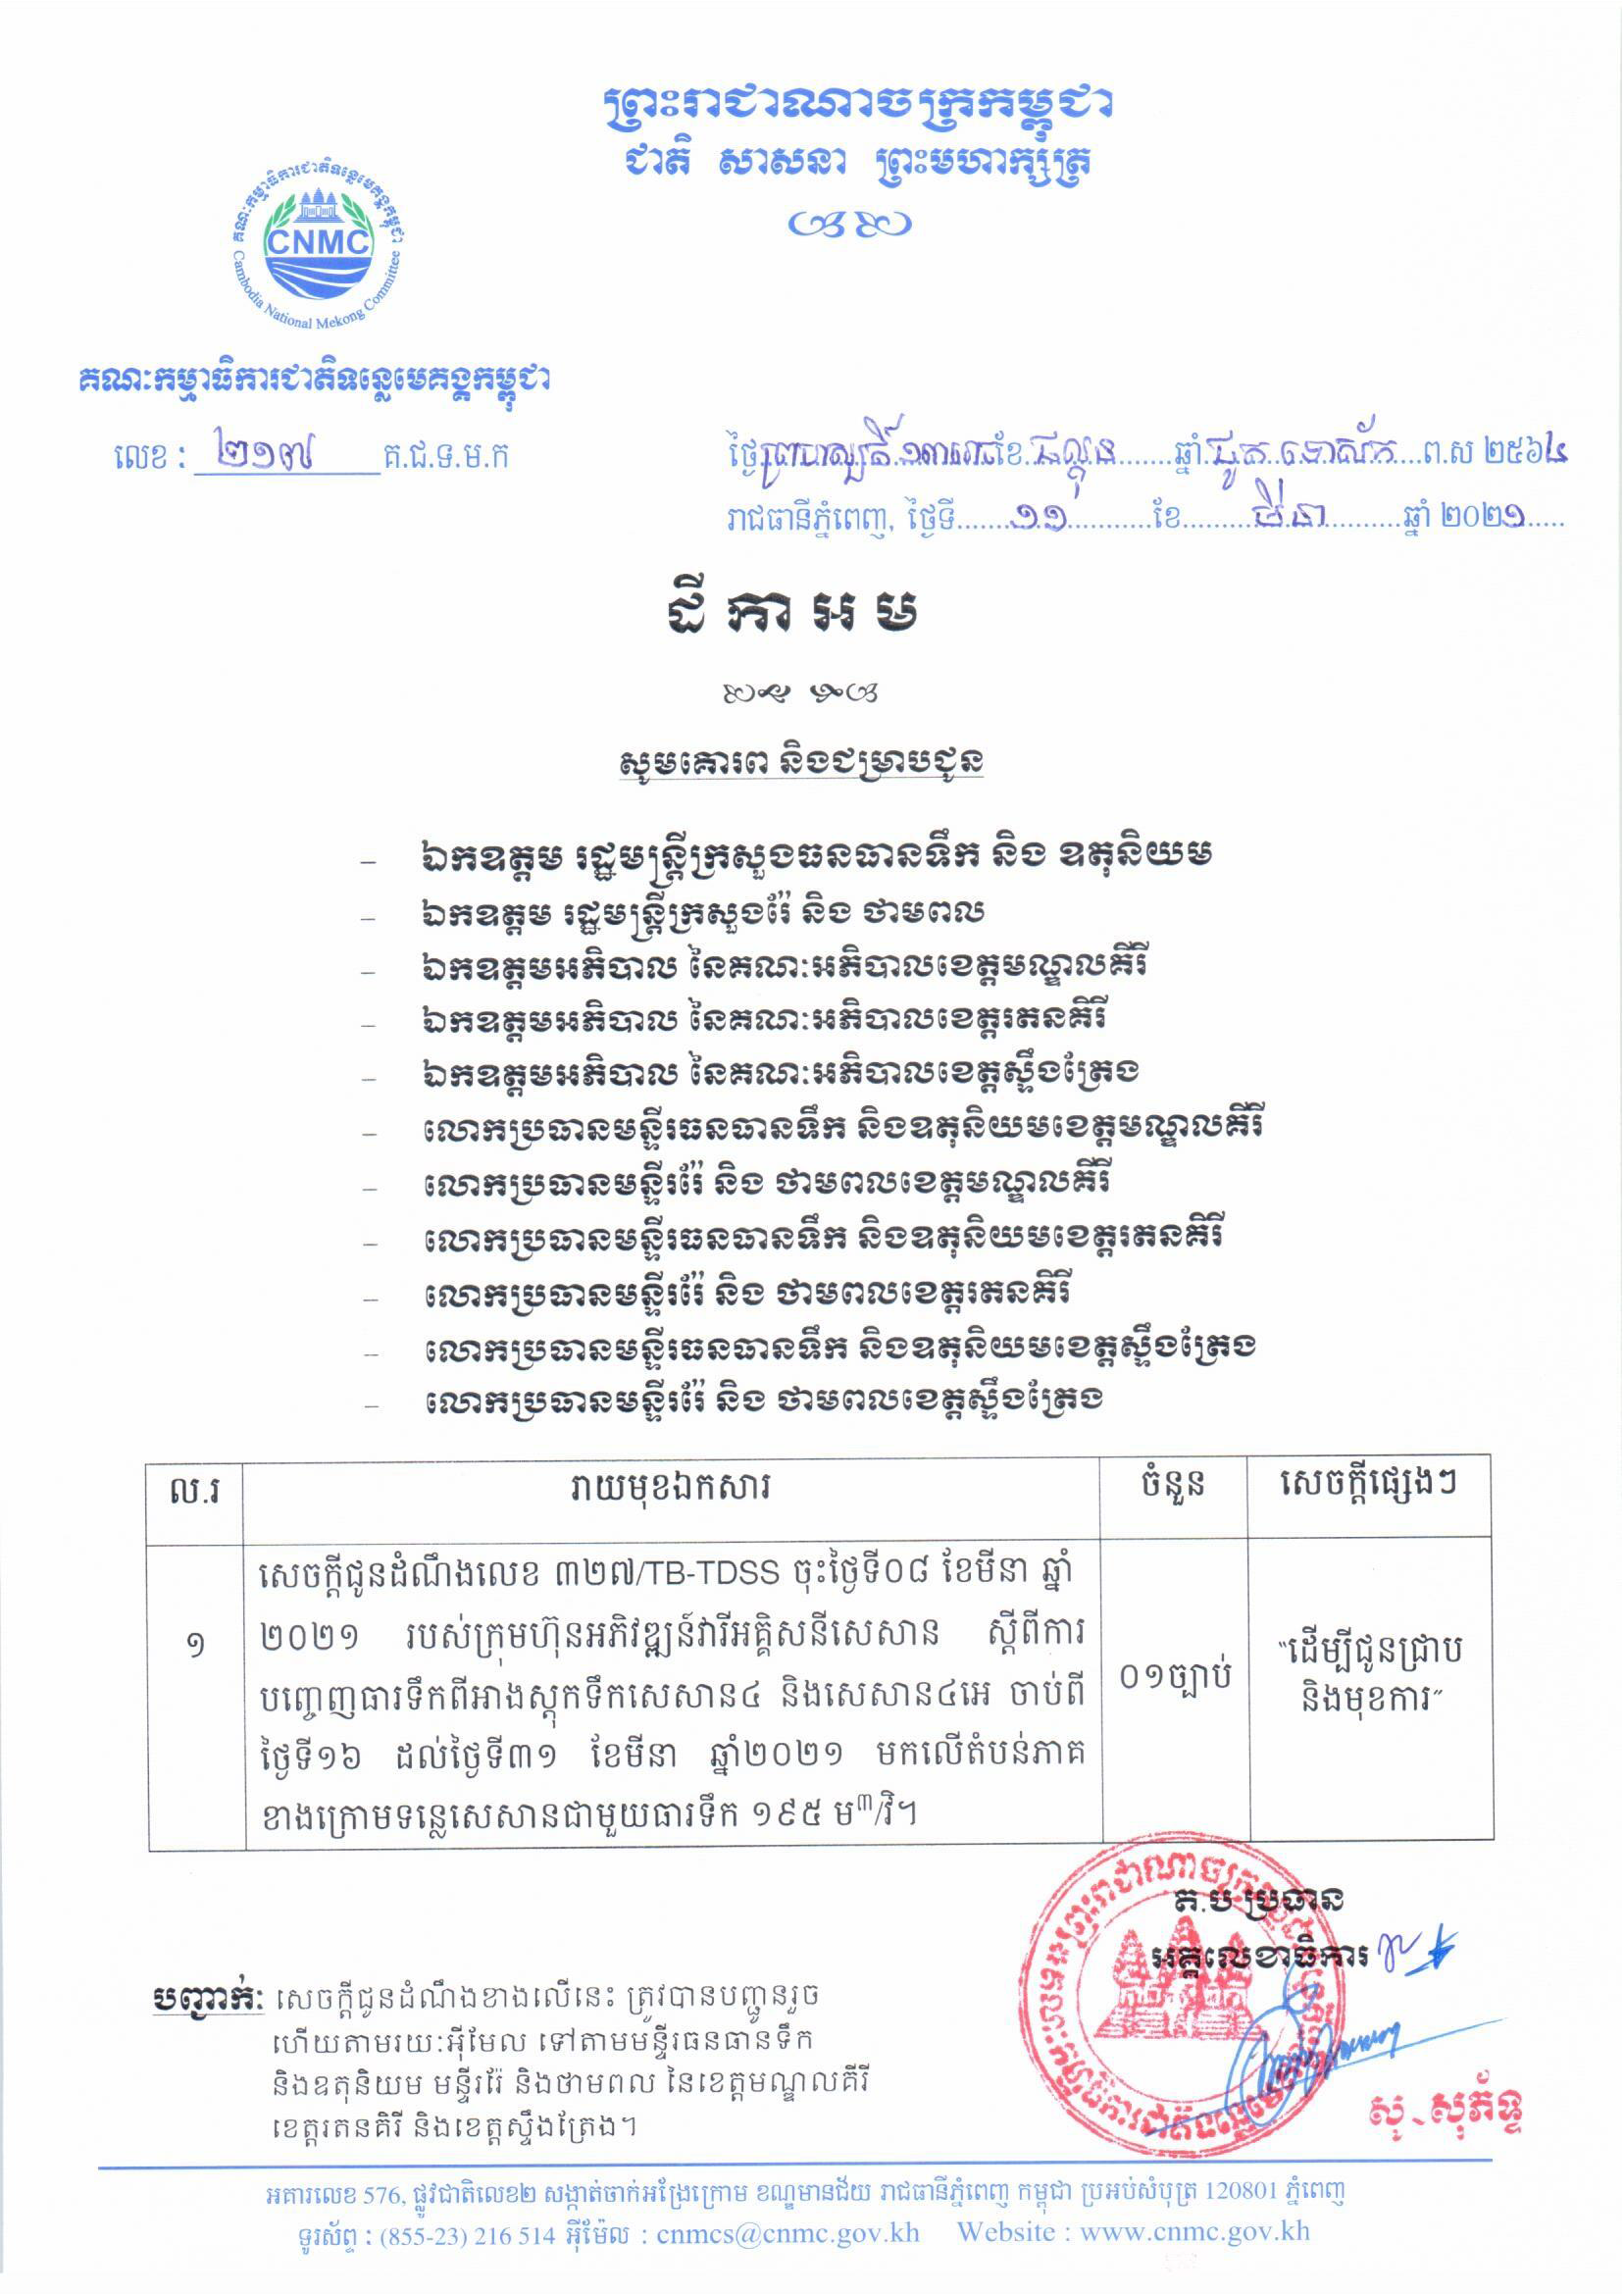 Notification On Water Release Schedule From Sesan 4 Reservoir and Sesan 4A Reservoir to the lower area of Sesan River from 16-31 March 2021.